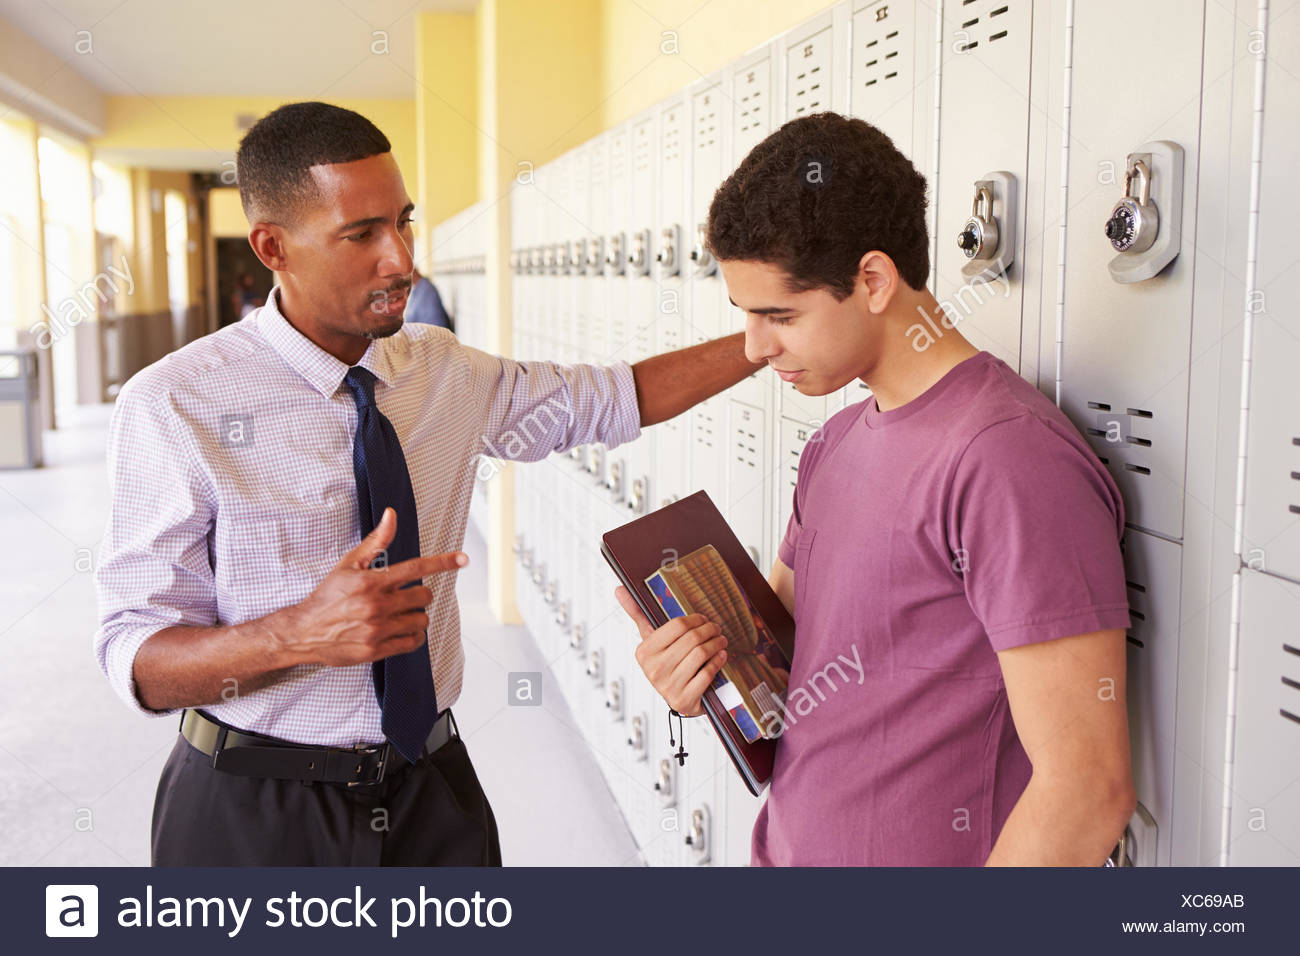 Male High School Student Talking To Teacher By Lockers - Stock Image